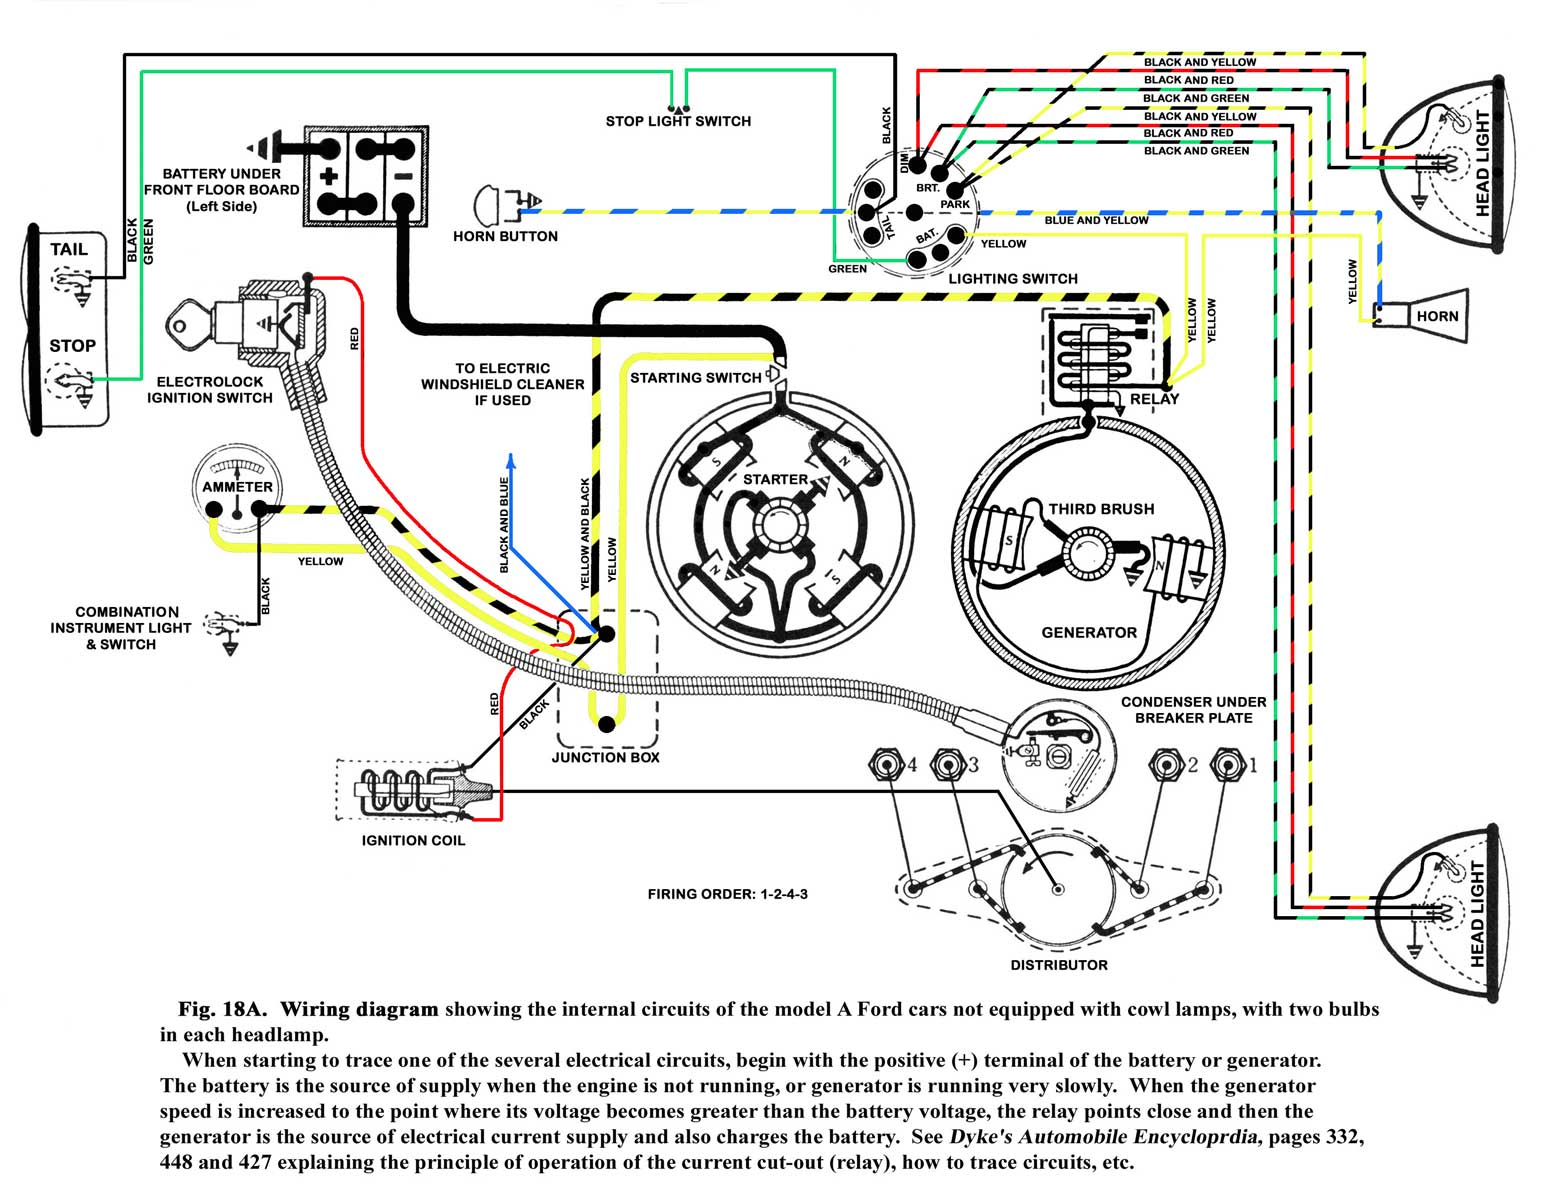 ford wiring harness diagrams wiring diagram detailed ford 3000 tractor wiring harness diagram ford wiring harness diagrams [ 1546 x 1195 Pixel ]